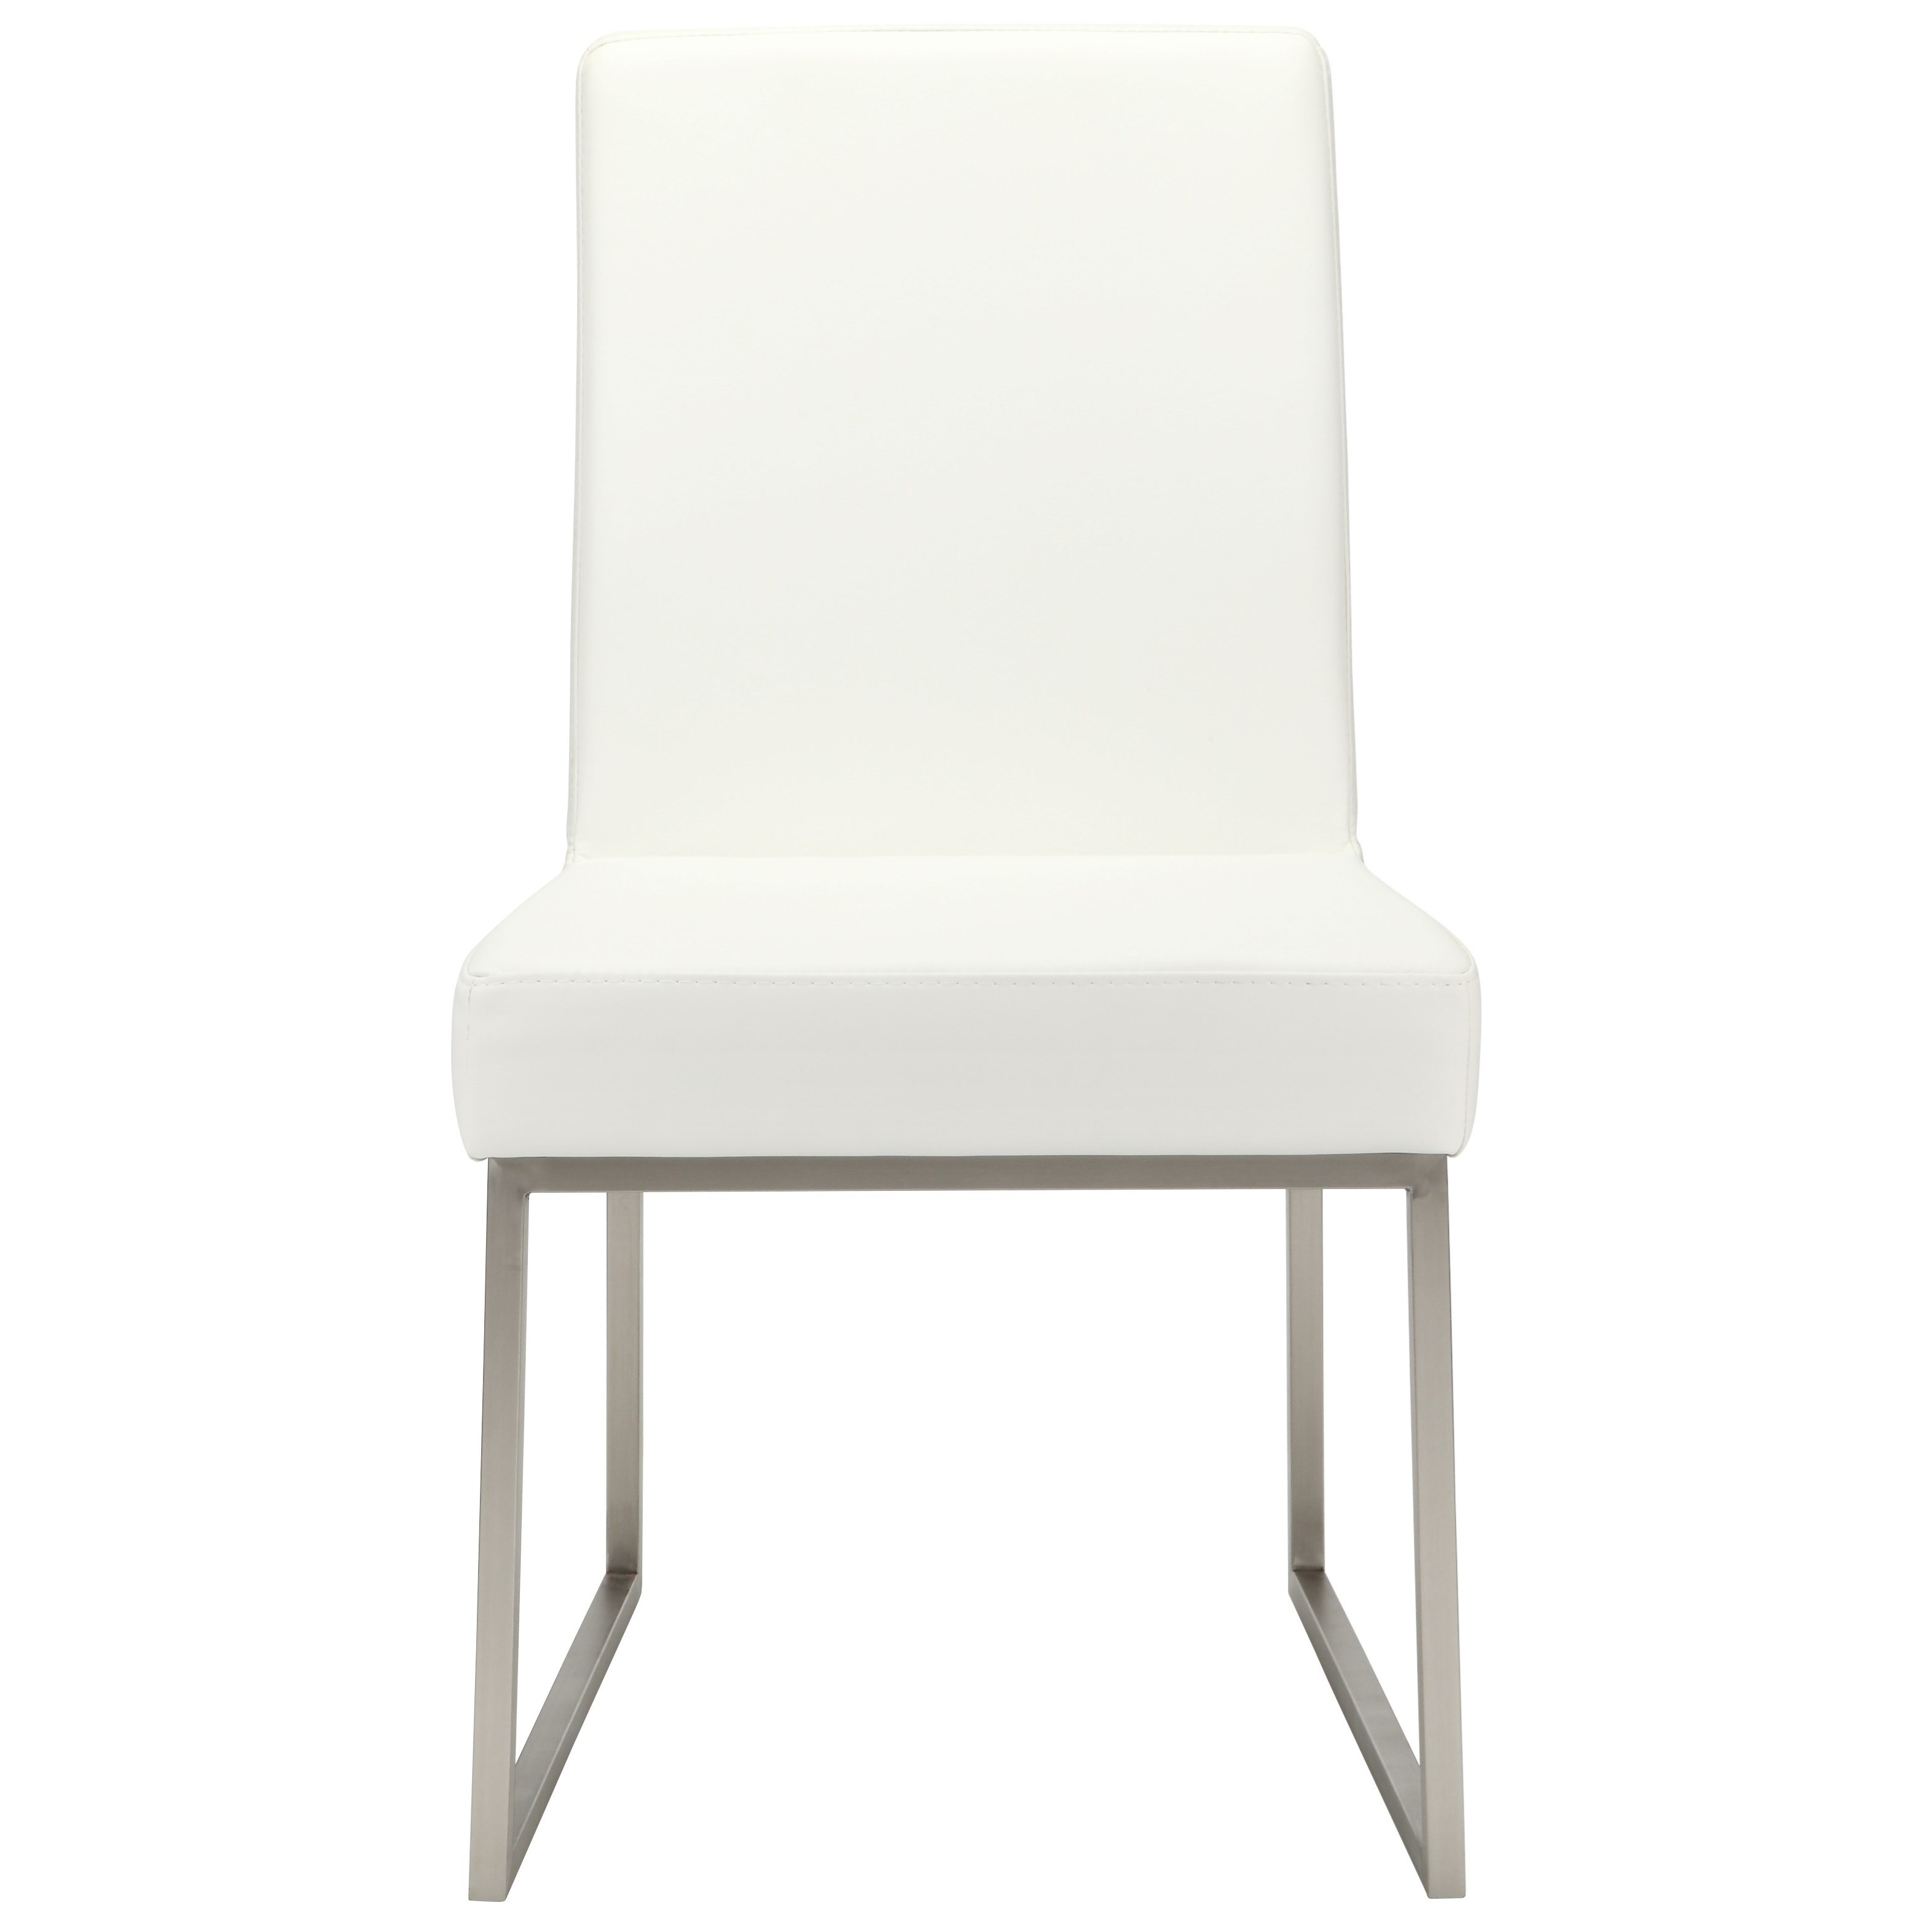 Tyson White Dining Chair by Moe's Home Collection at Stoney Creek Furniture